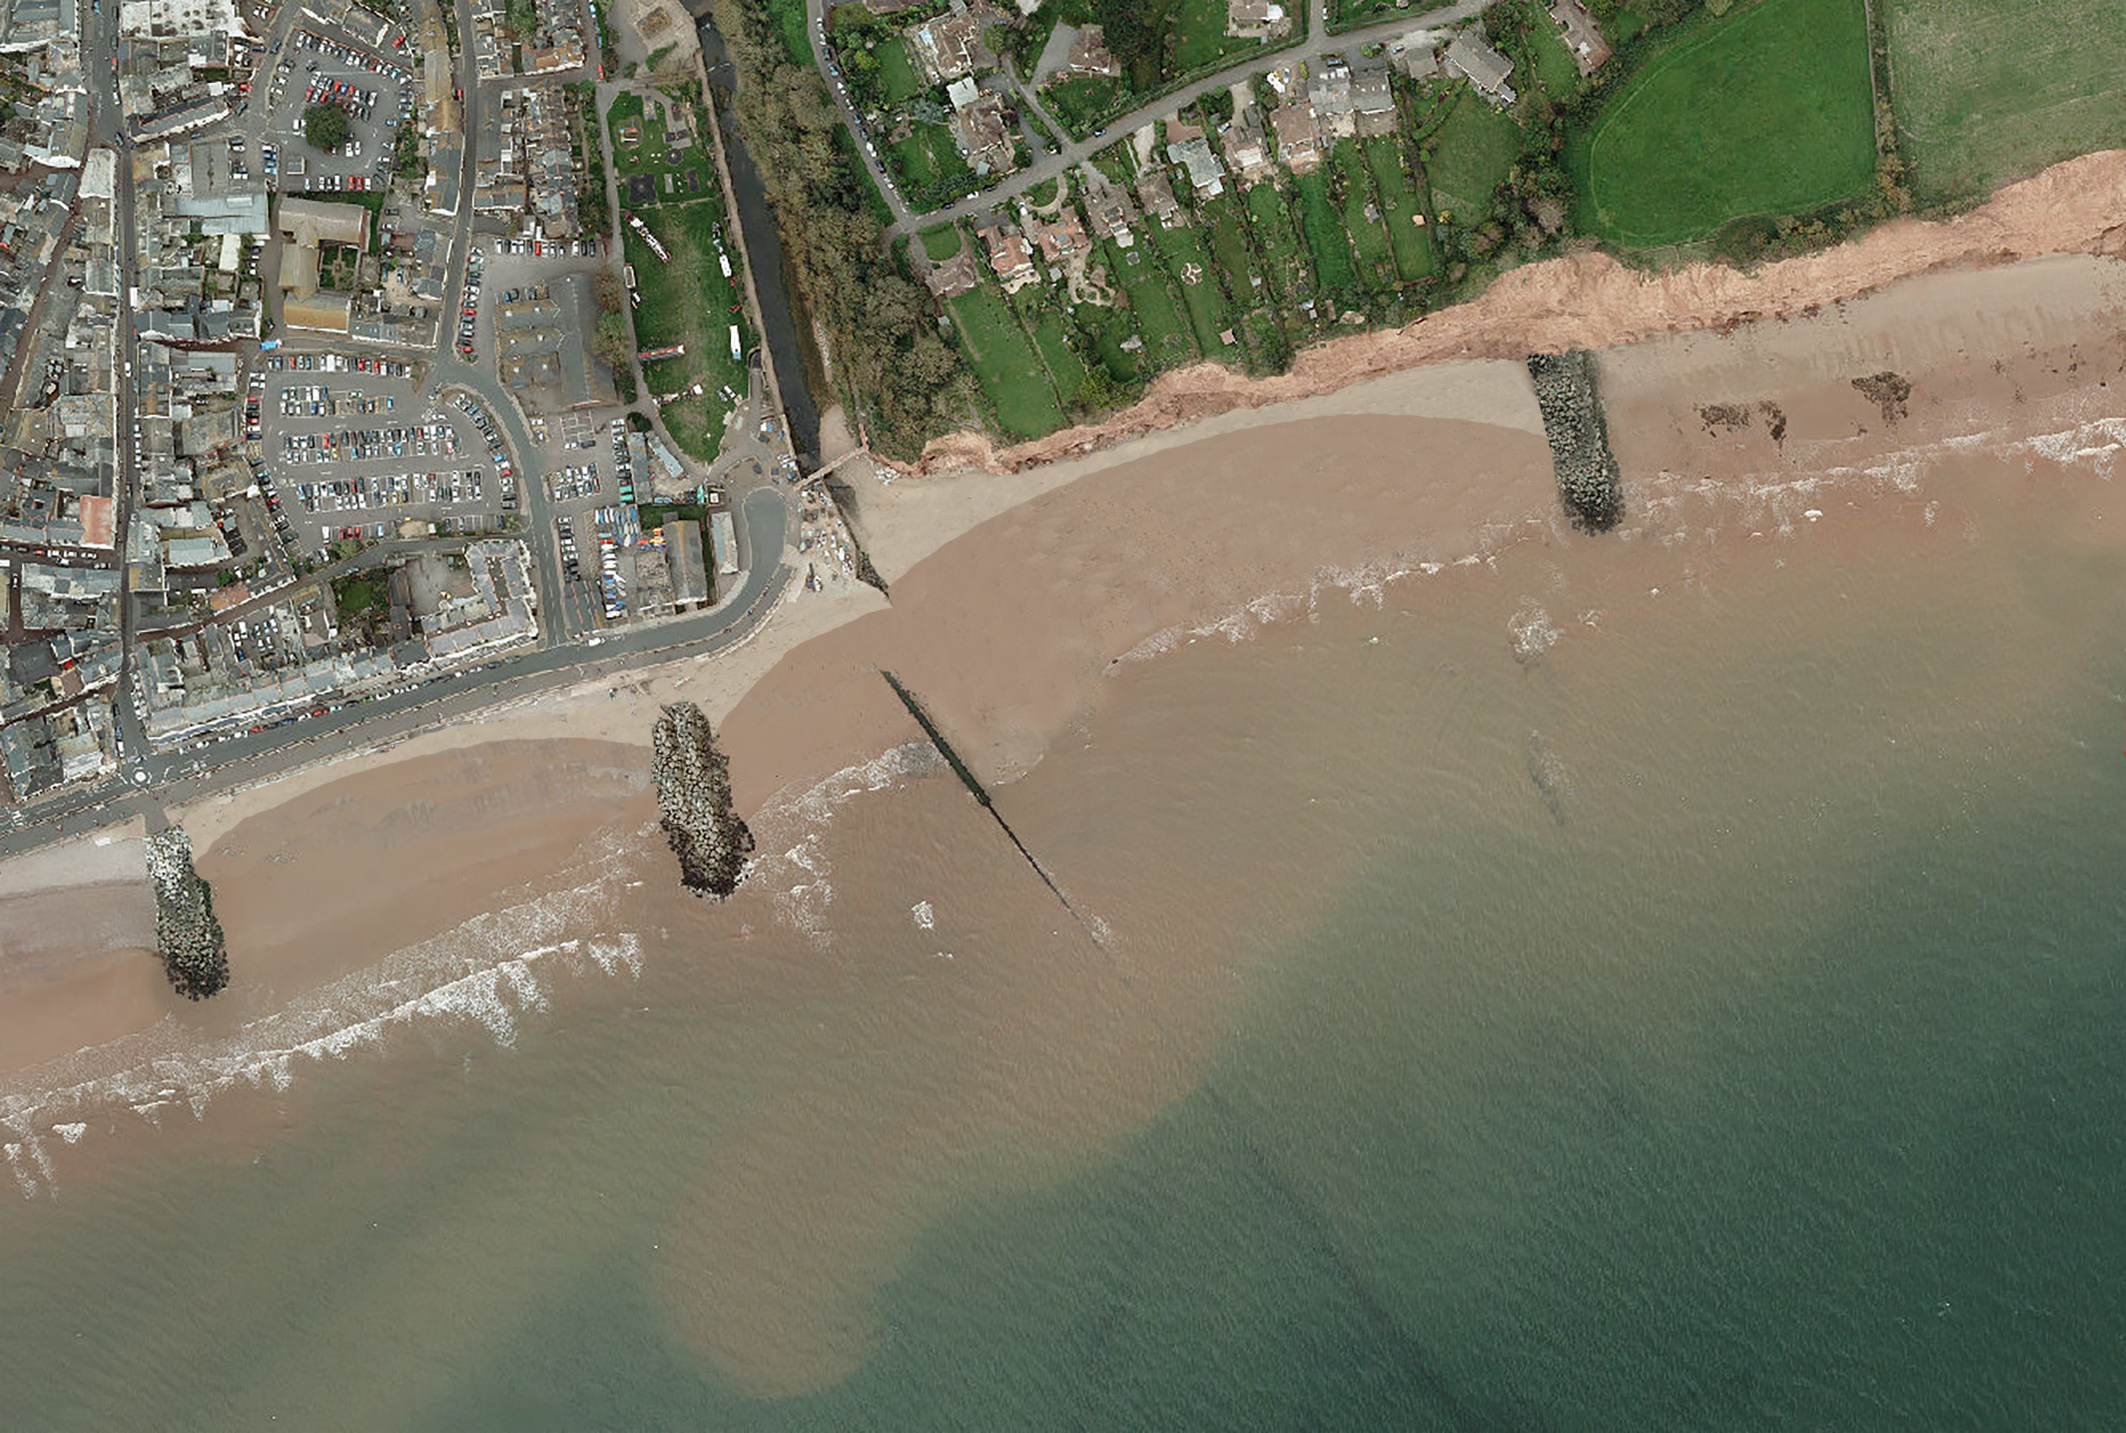 The preferred option would involve beach replenishment, periodic beach recycling, a new rock groyne on East Beach, raising the height of the splash wall and repairs to the river Sid training wall